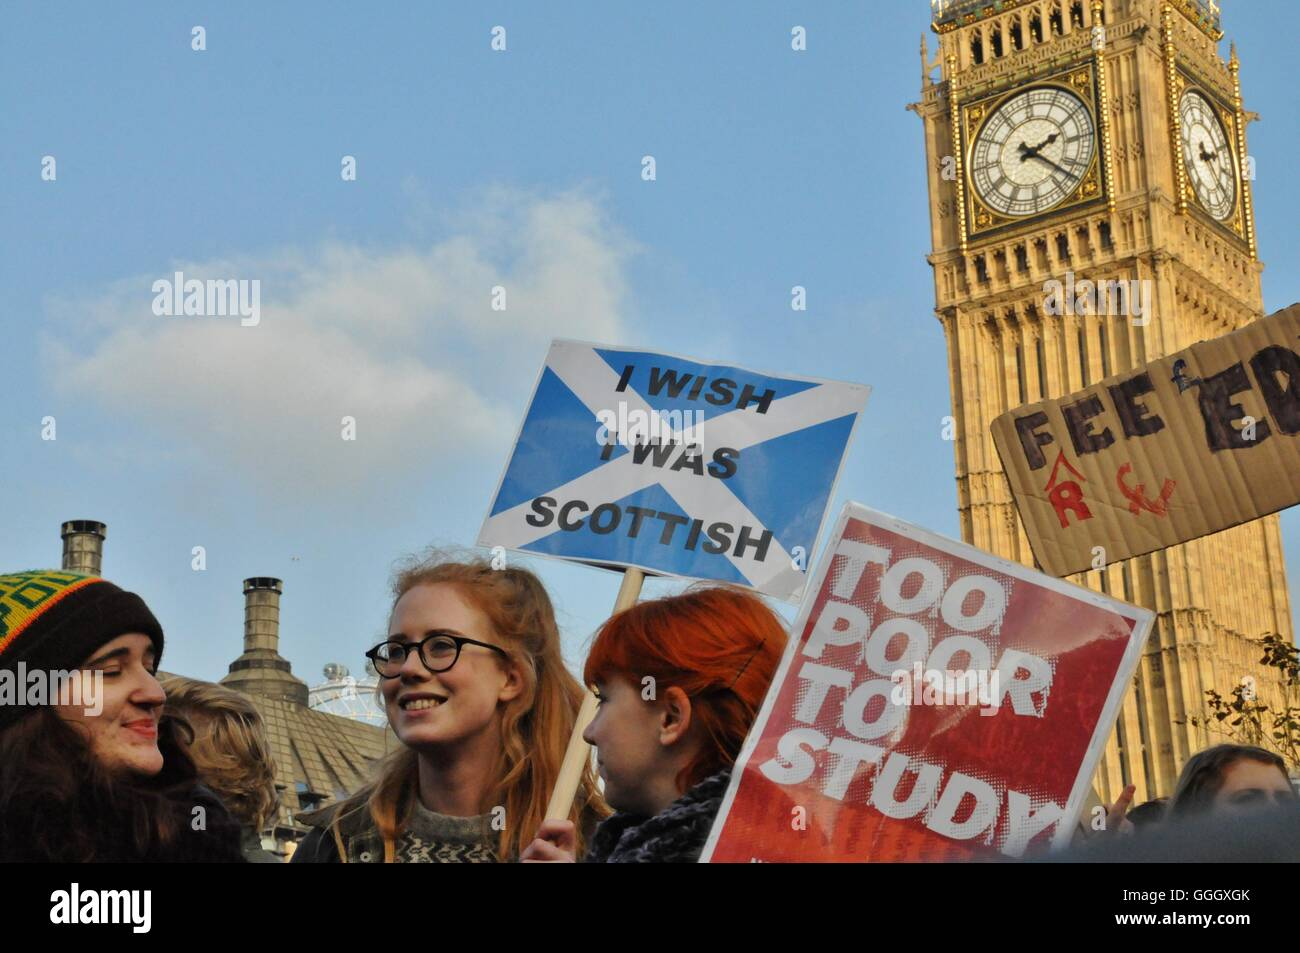 Students protest against the cuts to tuition fees in England and Wales. - Stock Image